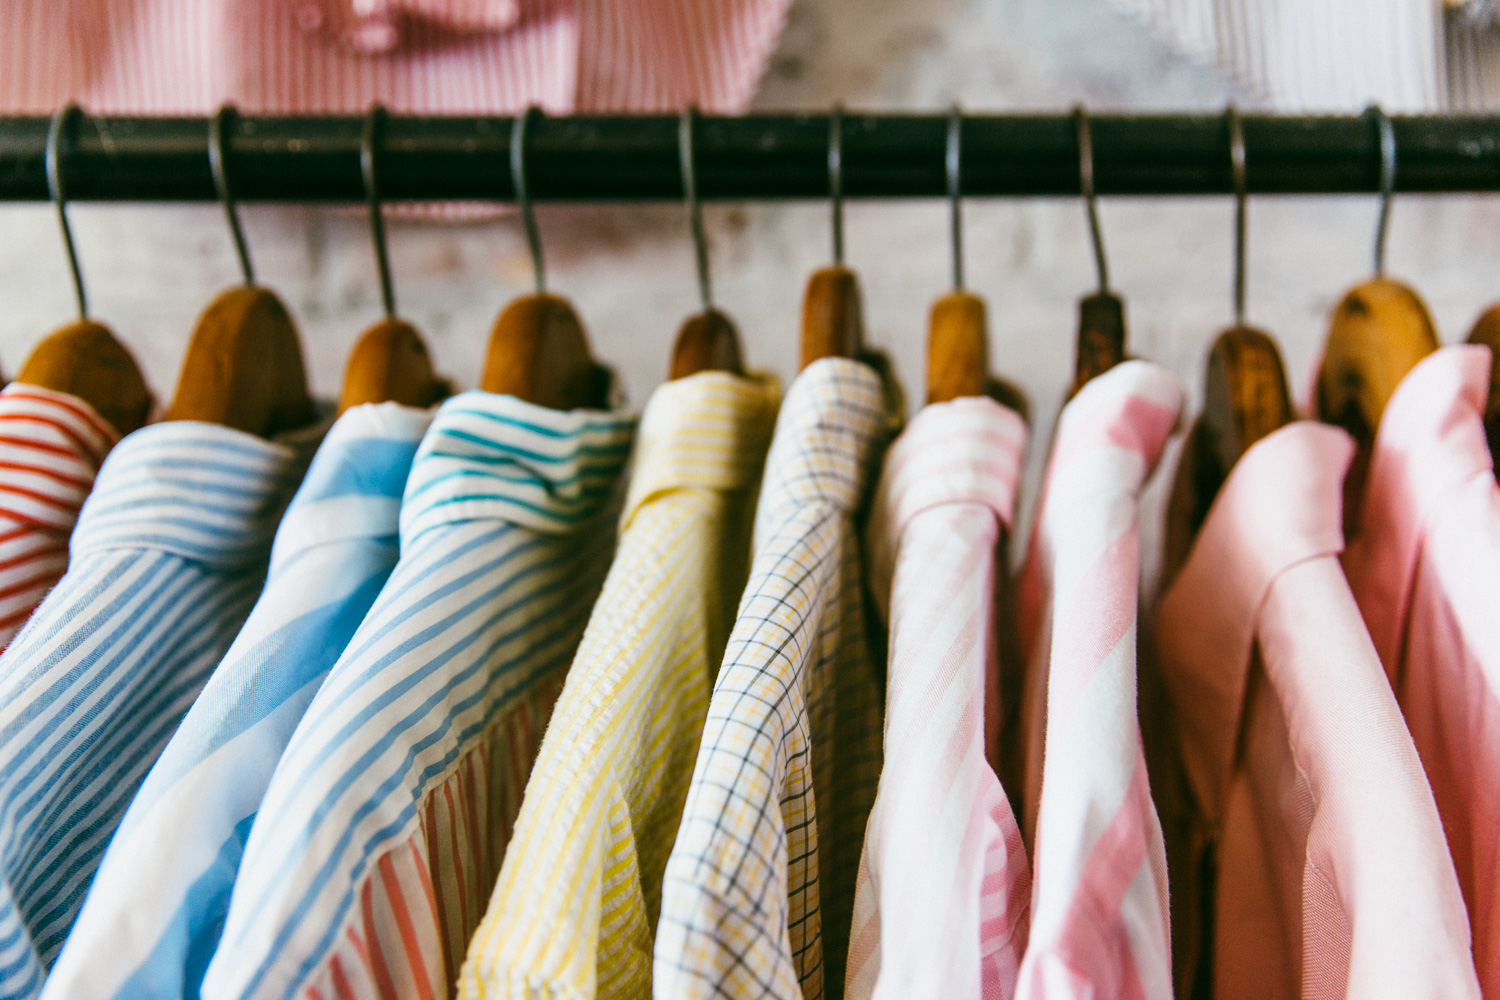 Vintage Oxford cloth button downs from Gant, Brooks Brothers, and Ralph Lauren.